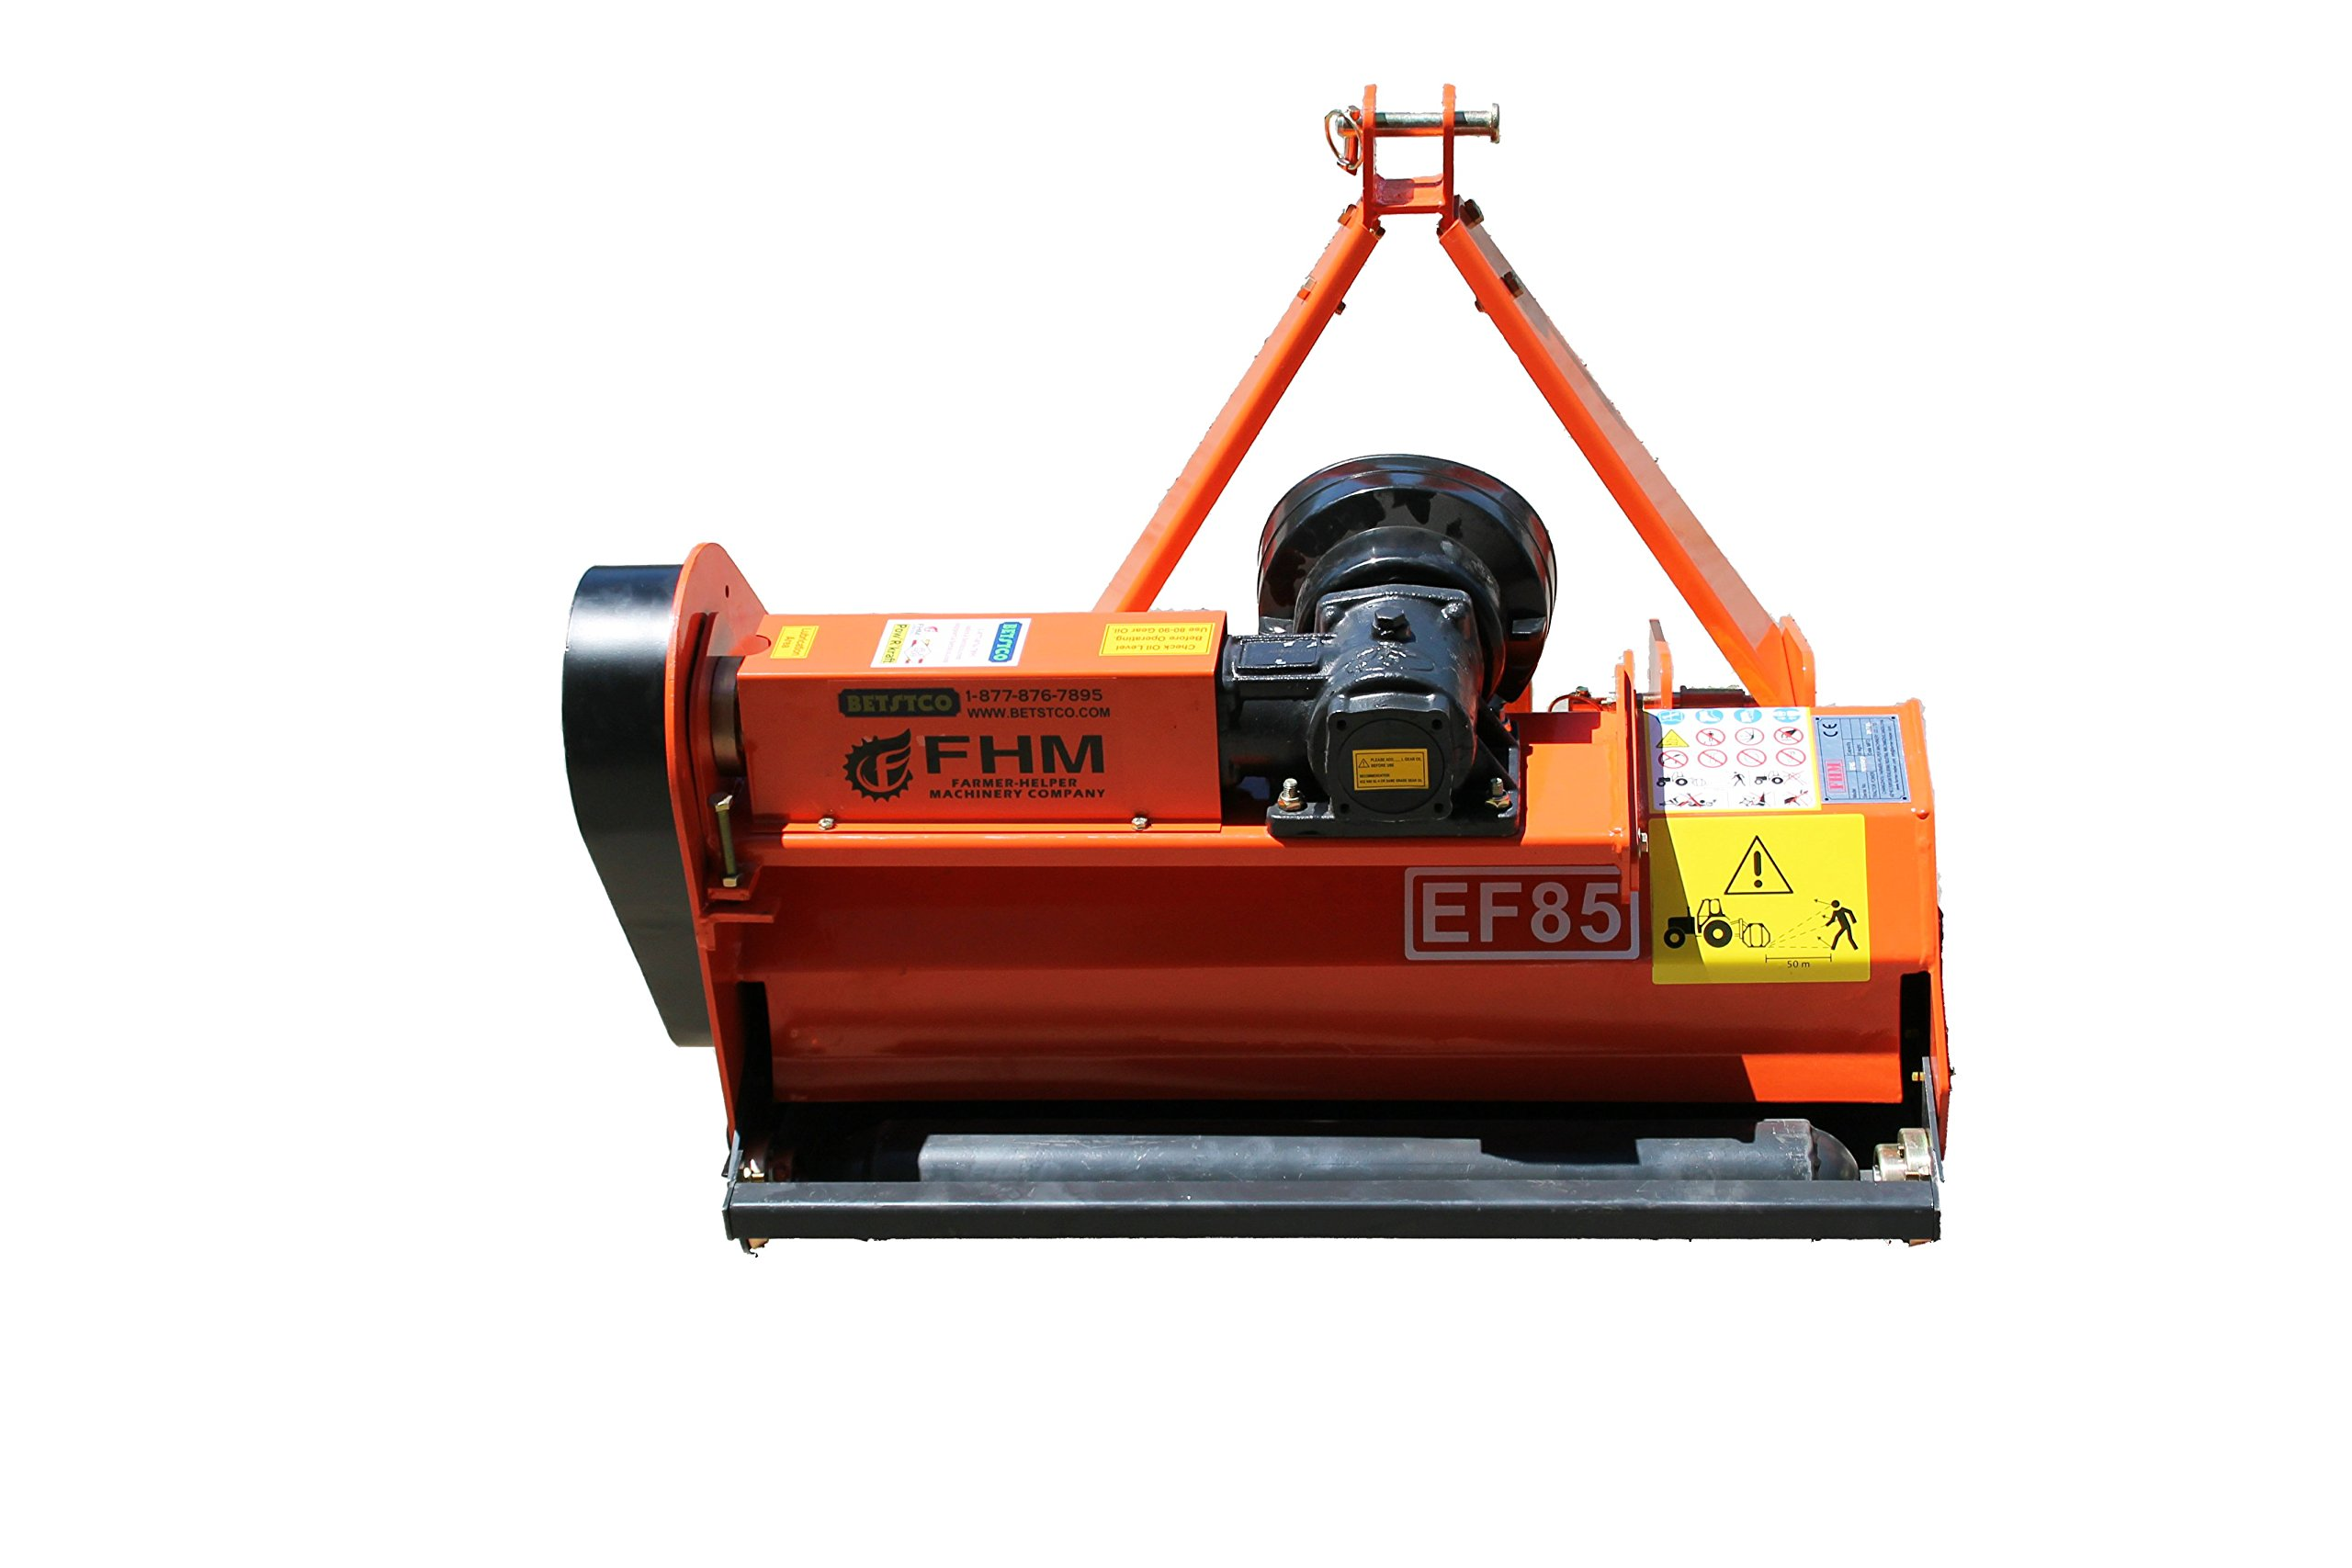 Farmer Helper Flail Mower 33'' Cat.I 3pt 15HP+ Rating (FH-EF85) Requires a Tractor. Not a standalone Unit.